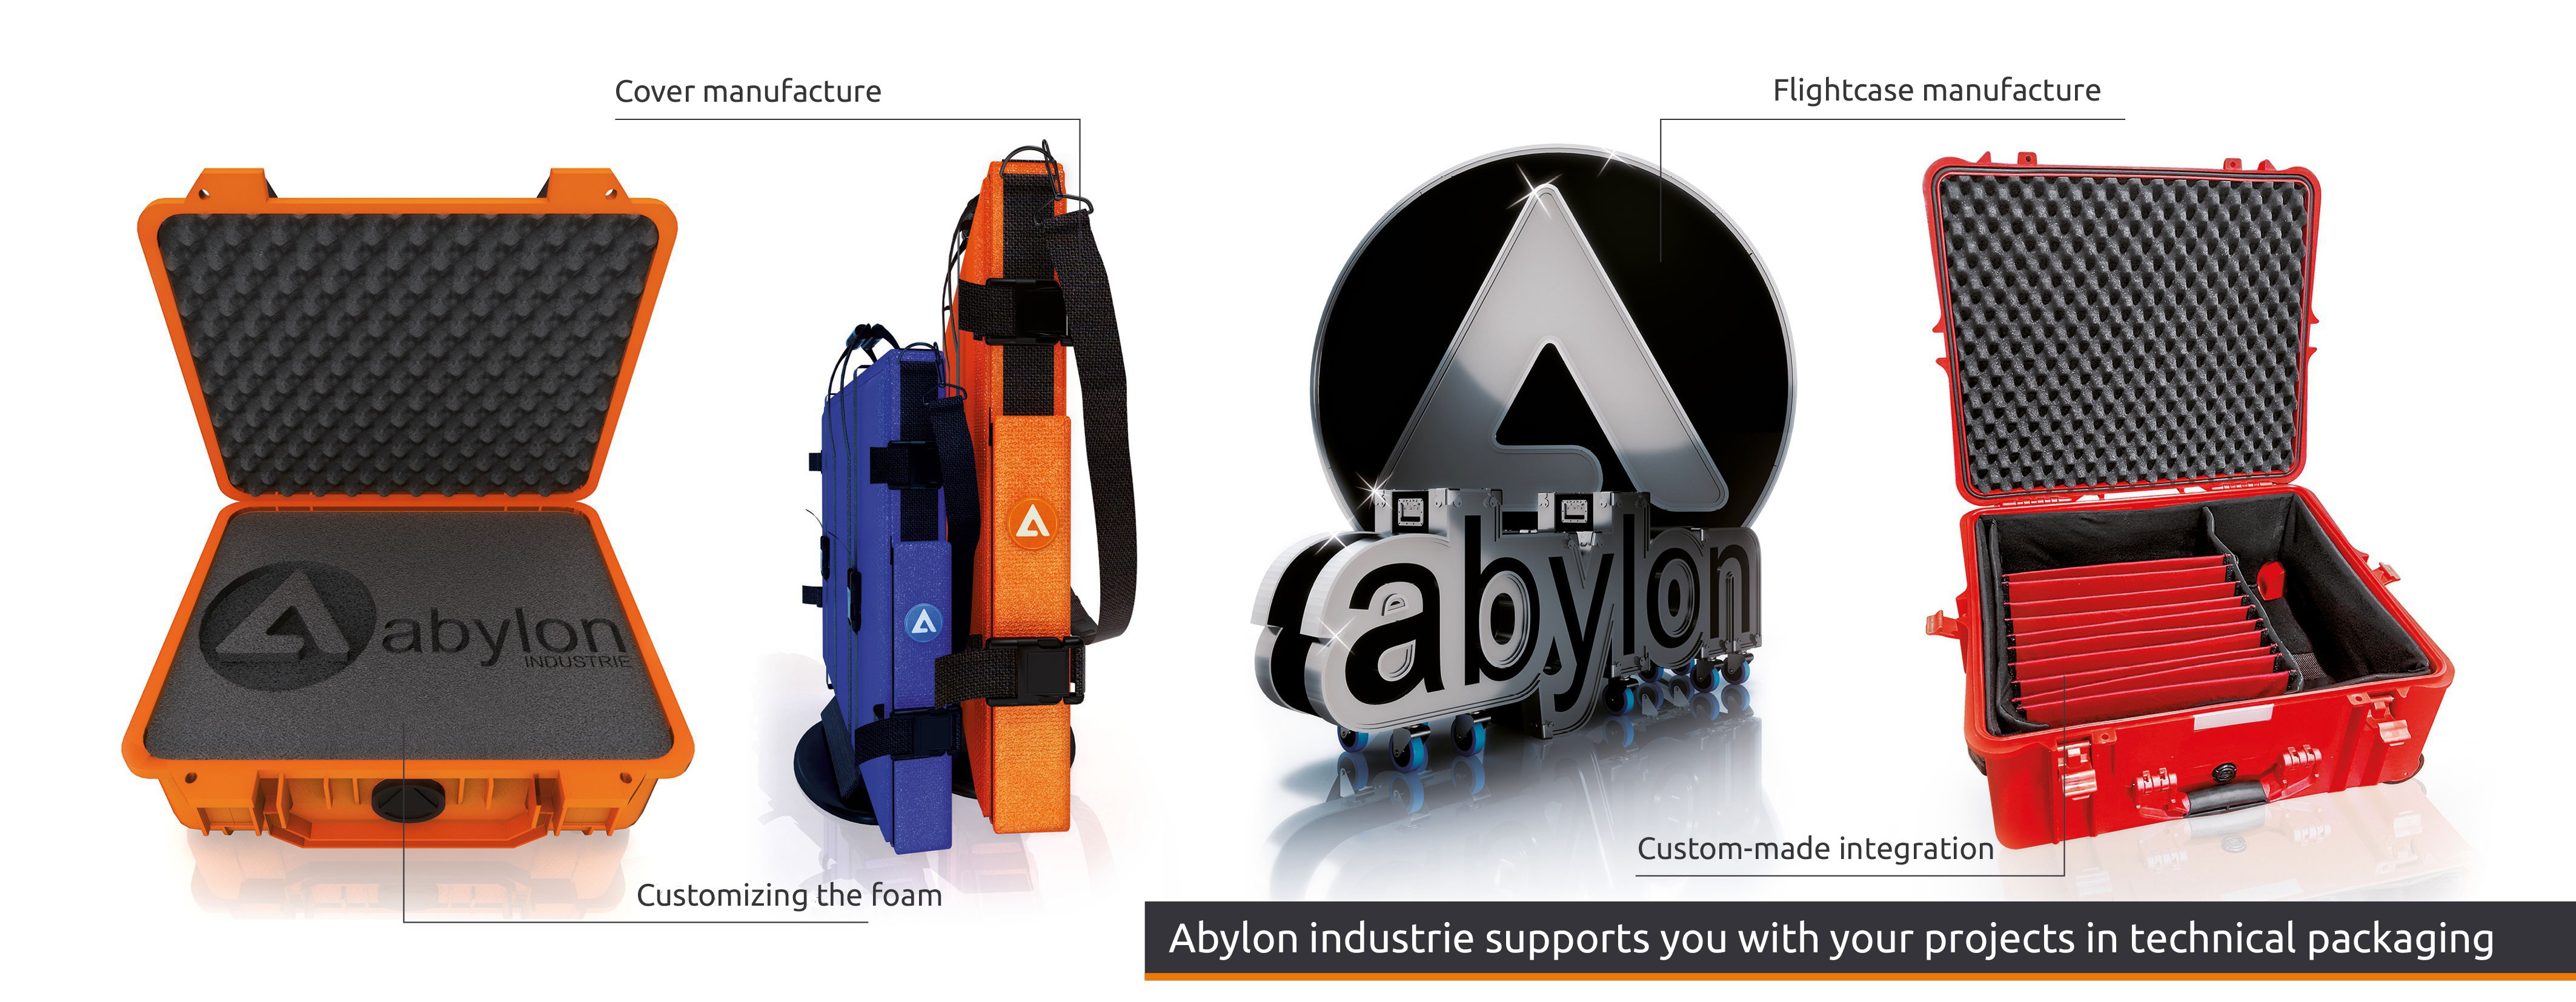 Abylon specialist in technical packaging